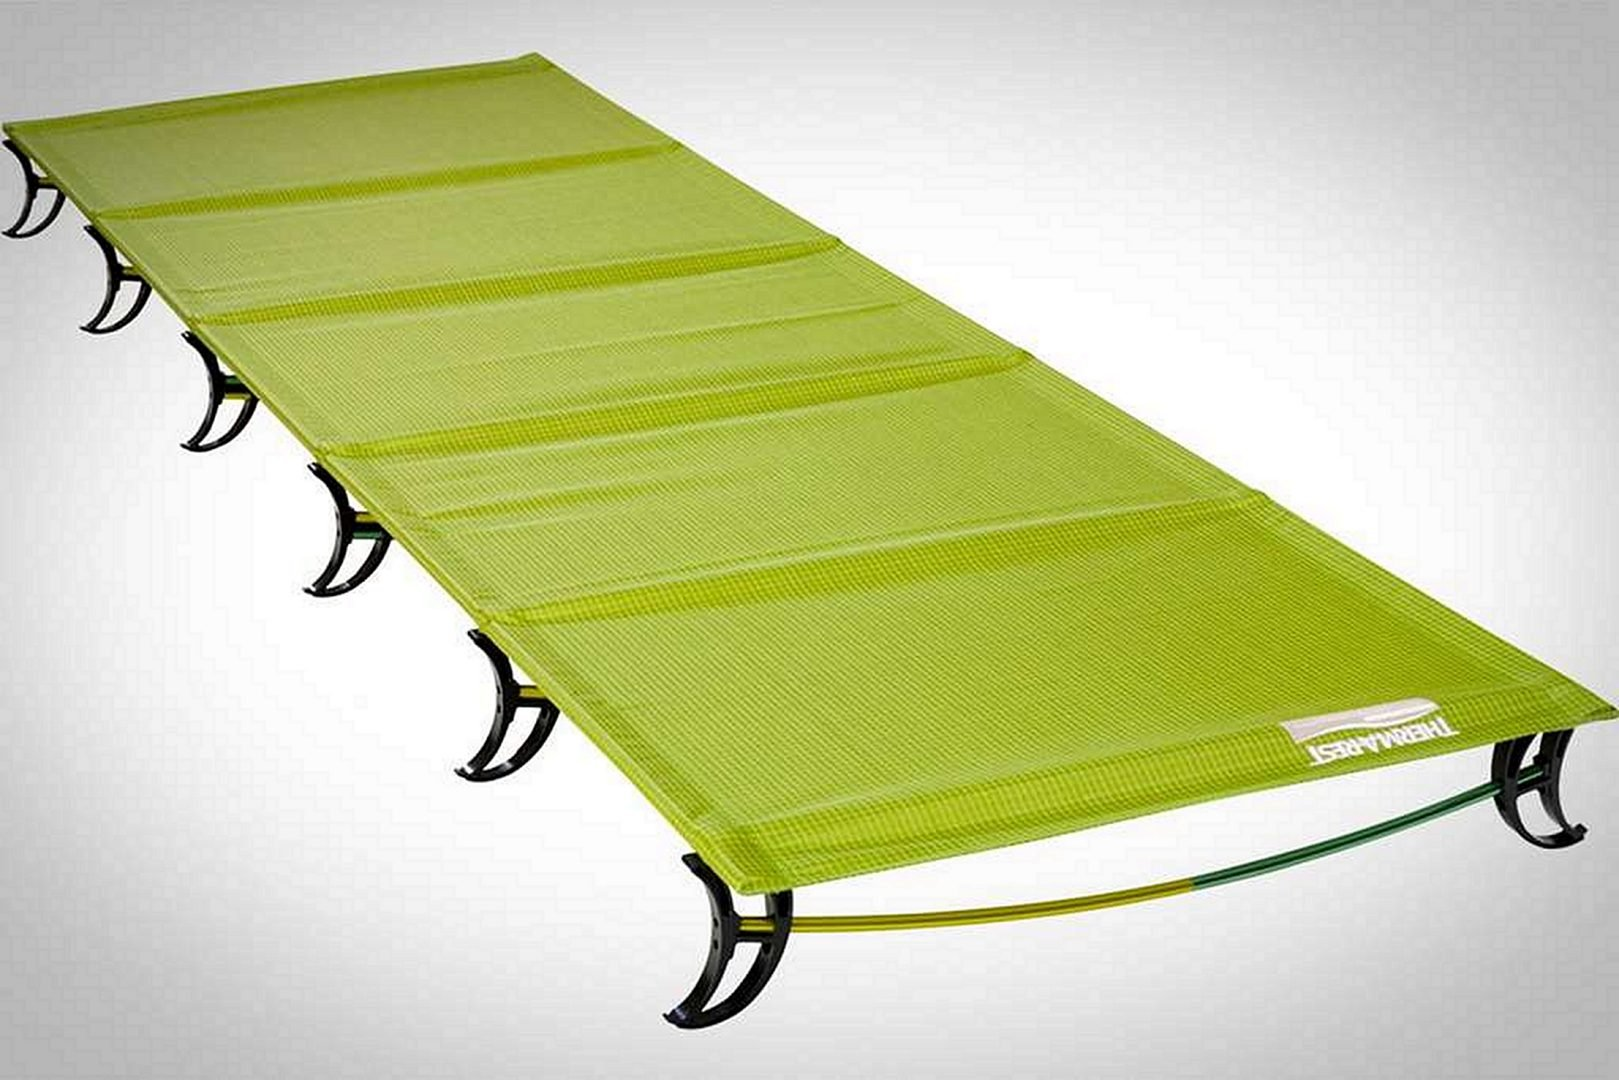 Thermarest camping cot, green